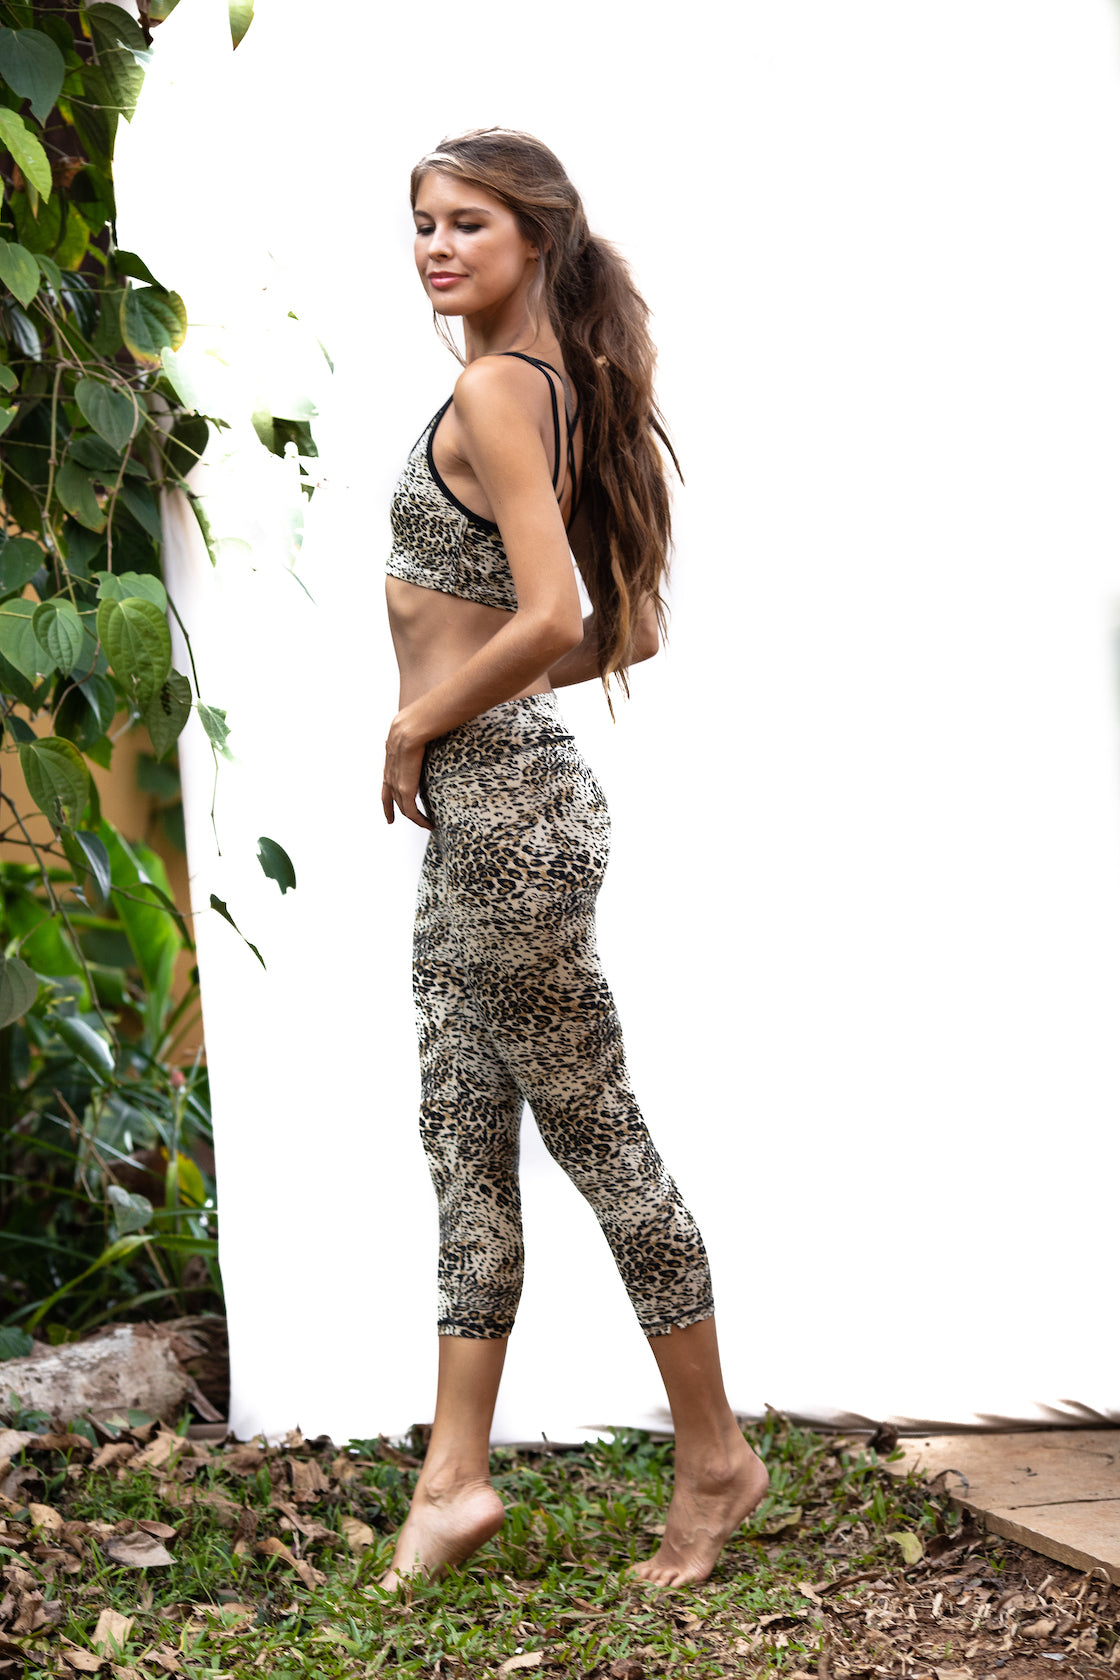 Cross Back Bra - Sports Bra - Cream Leopard